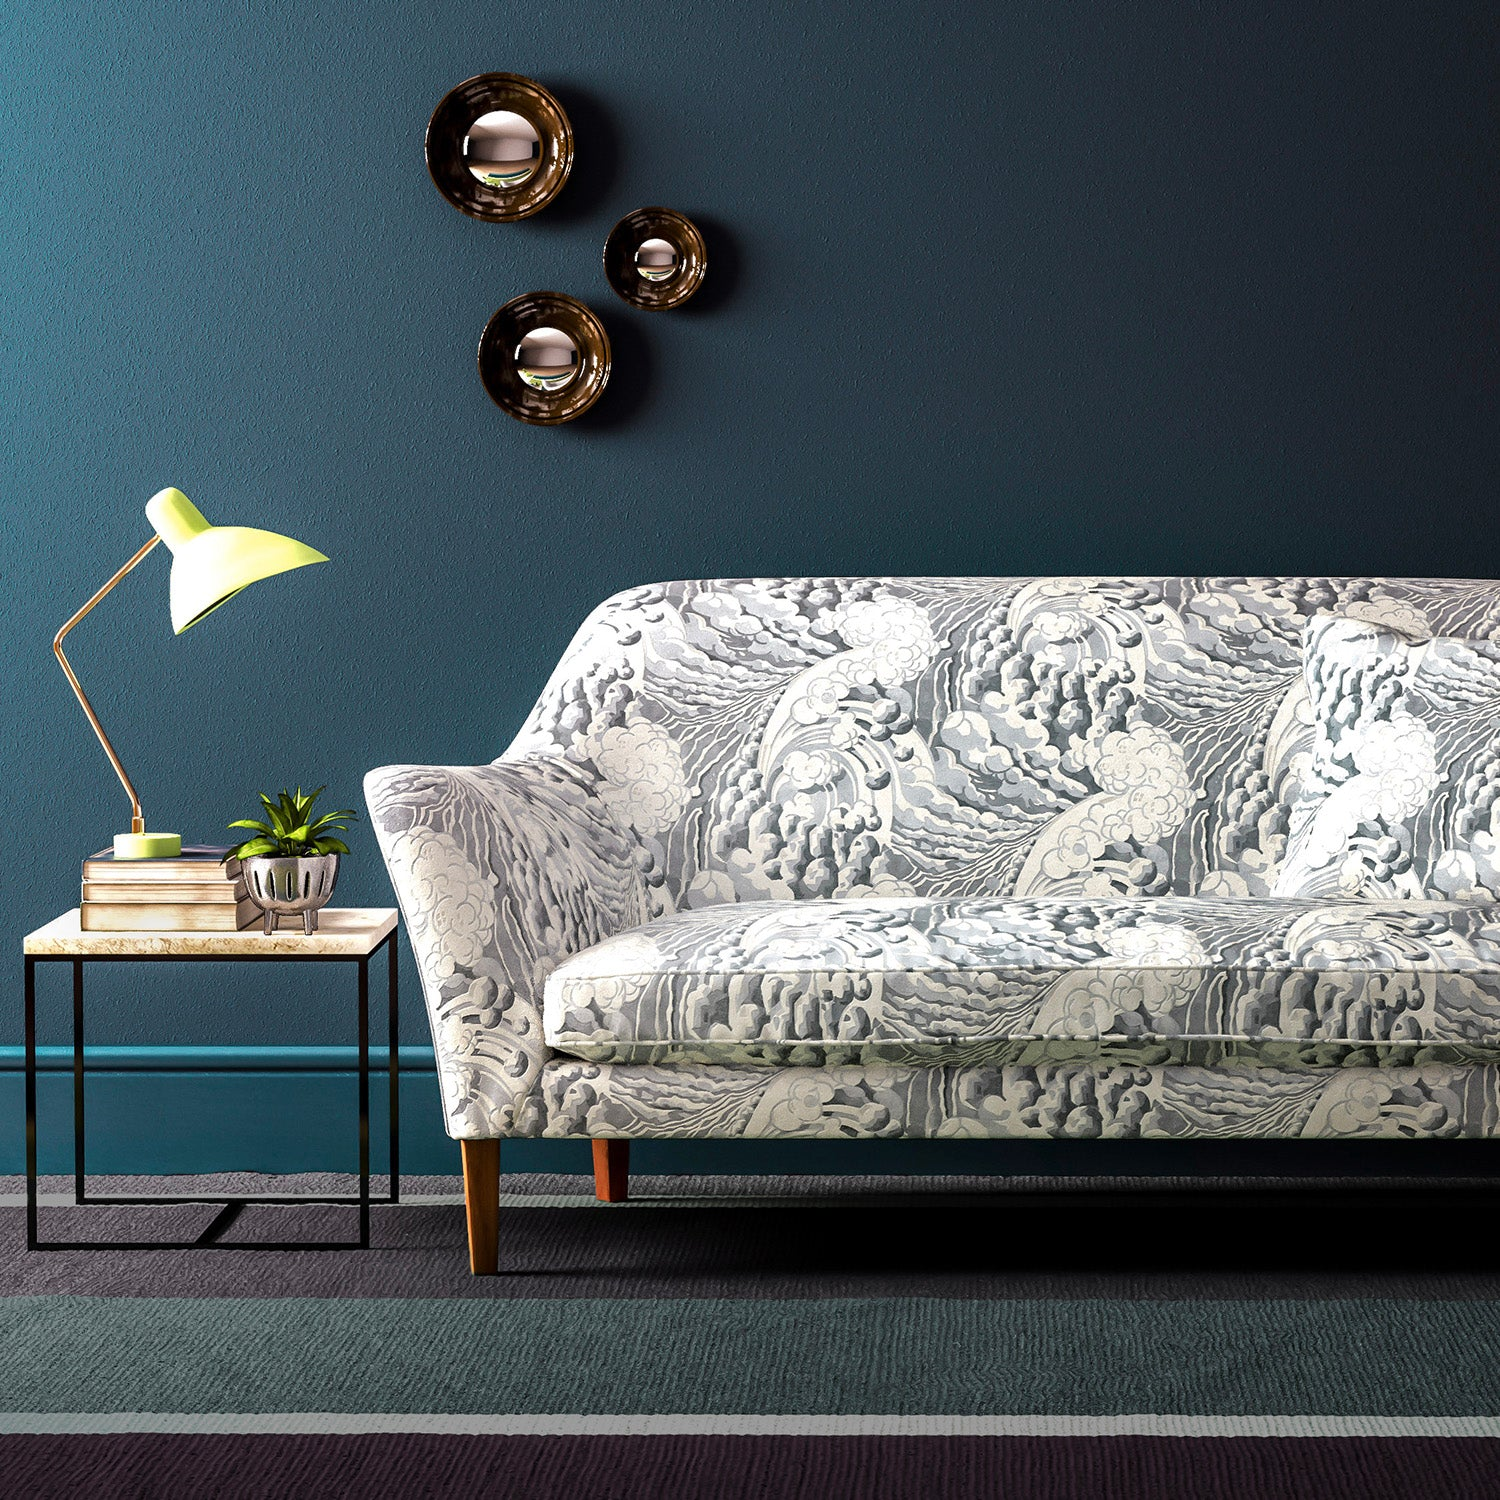 Sofa upholstered in a grey and white velvet upholstery fabric with a wave design and stain resistant finish